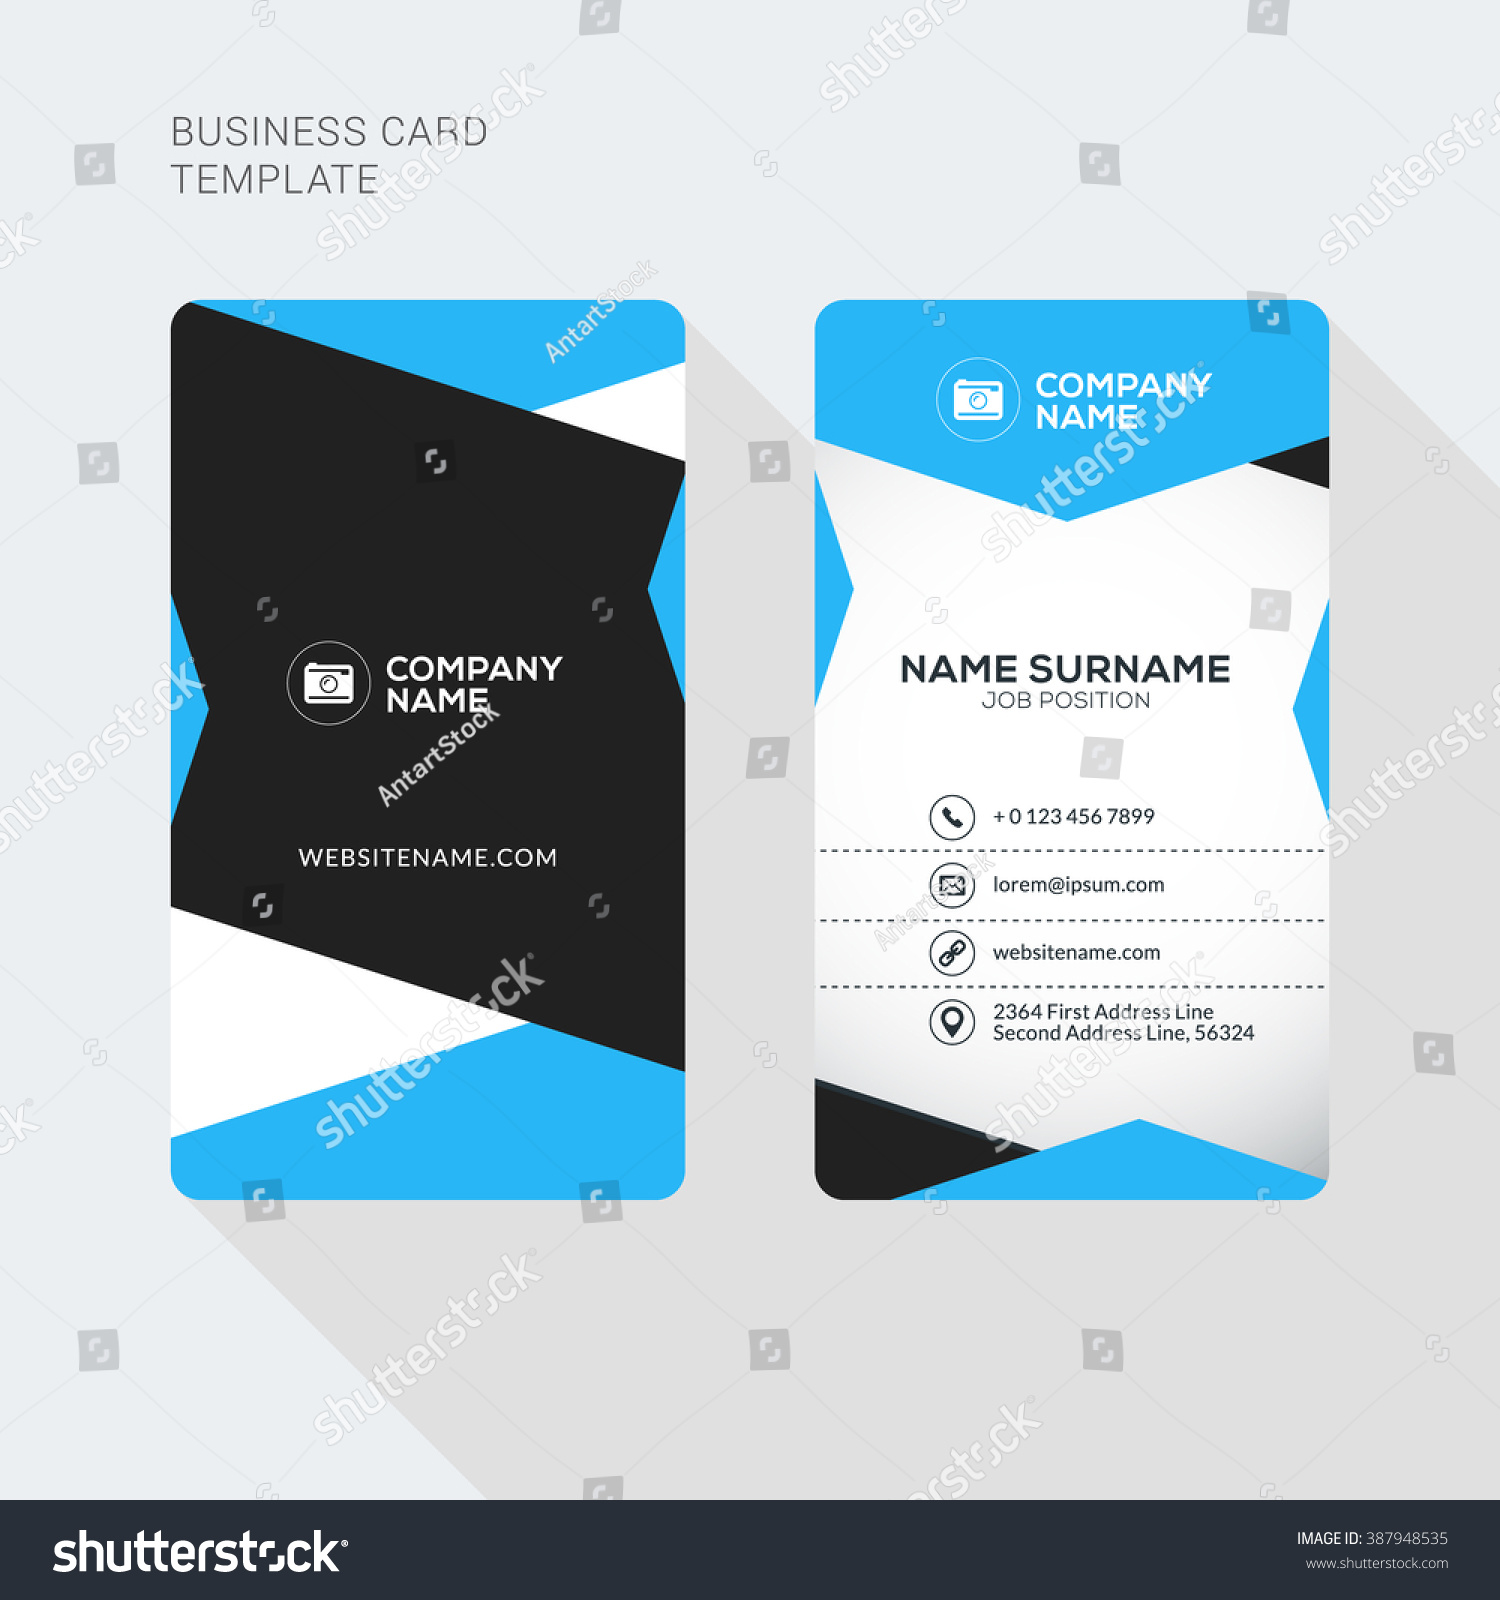 Modern Creative and Clean Two Sided Business Card Template. Flat Style ...